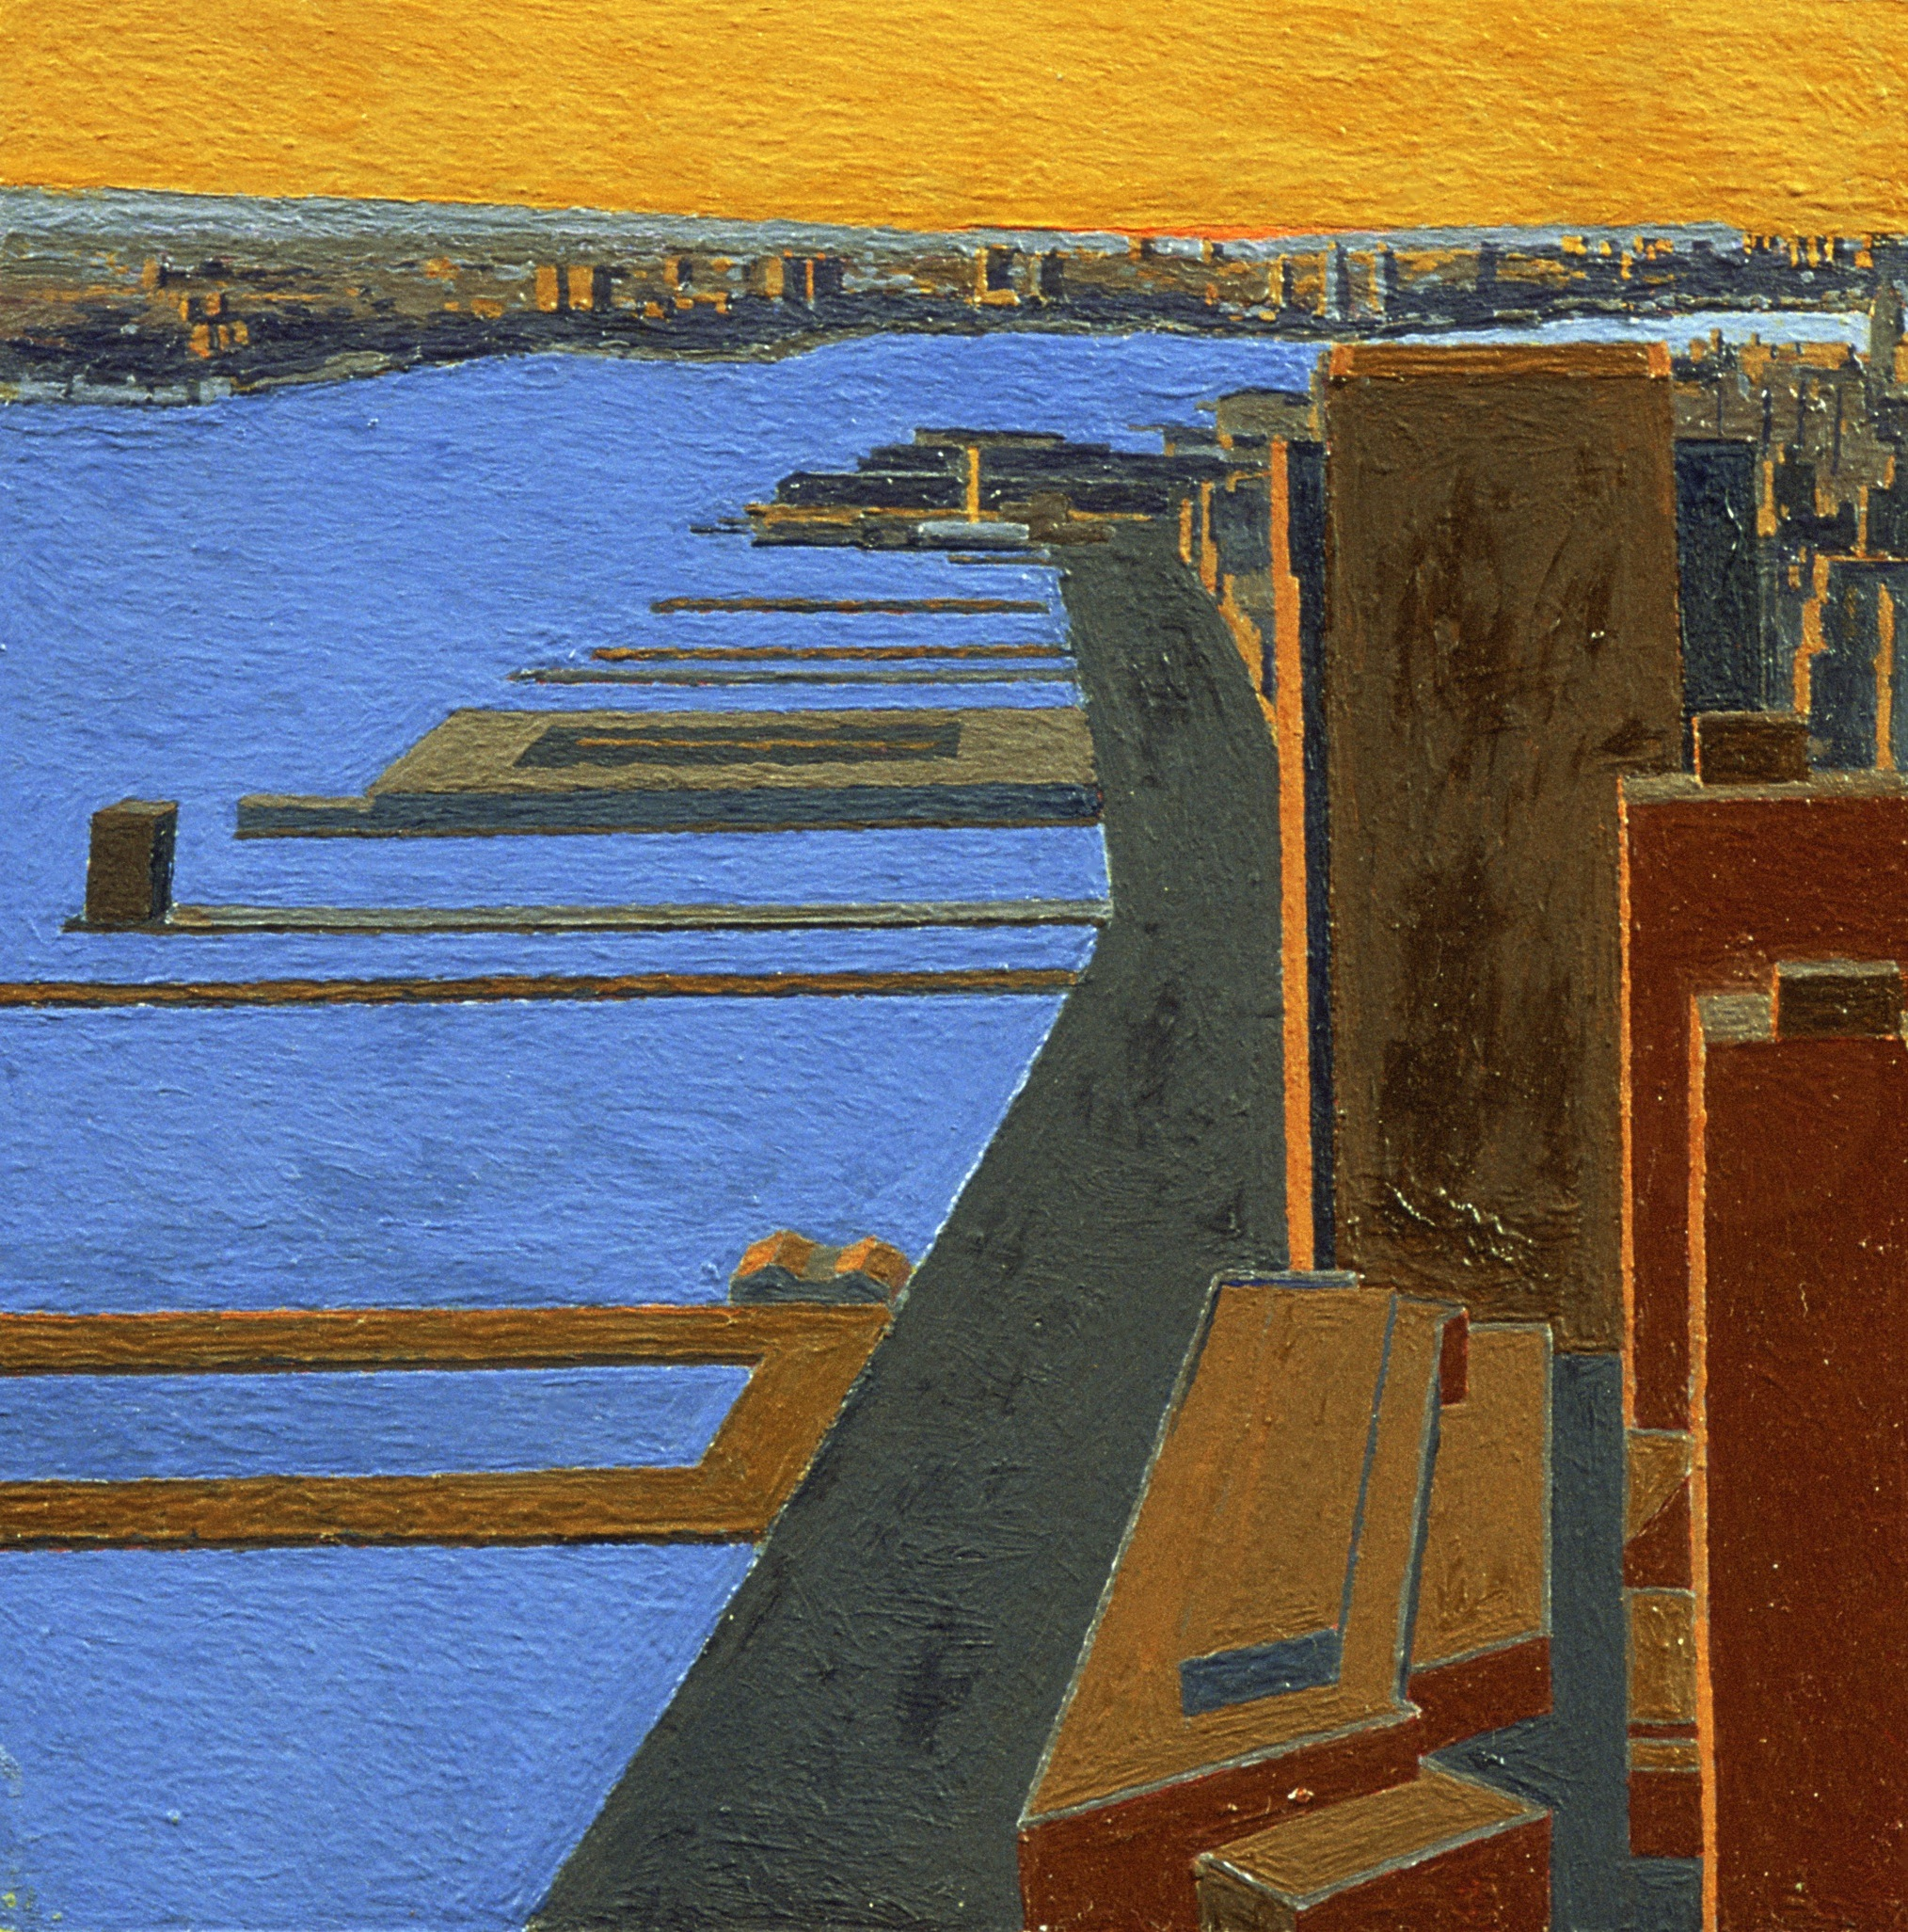 Hudson II, 1997, oil on panel, 9 1/2 x 9 1/2 inches